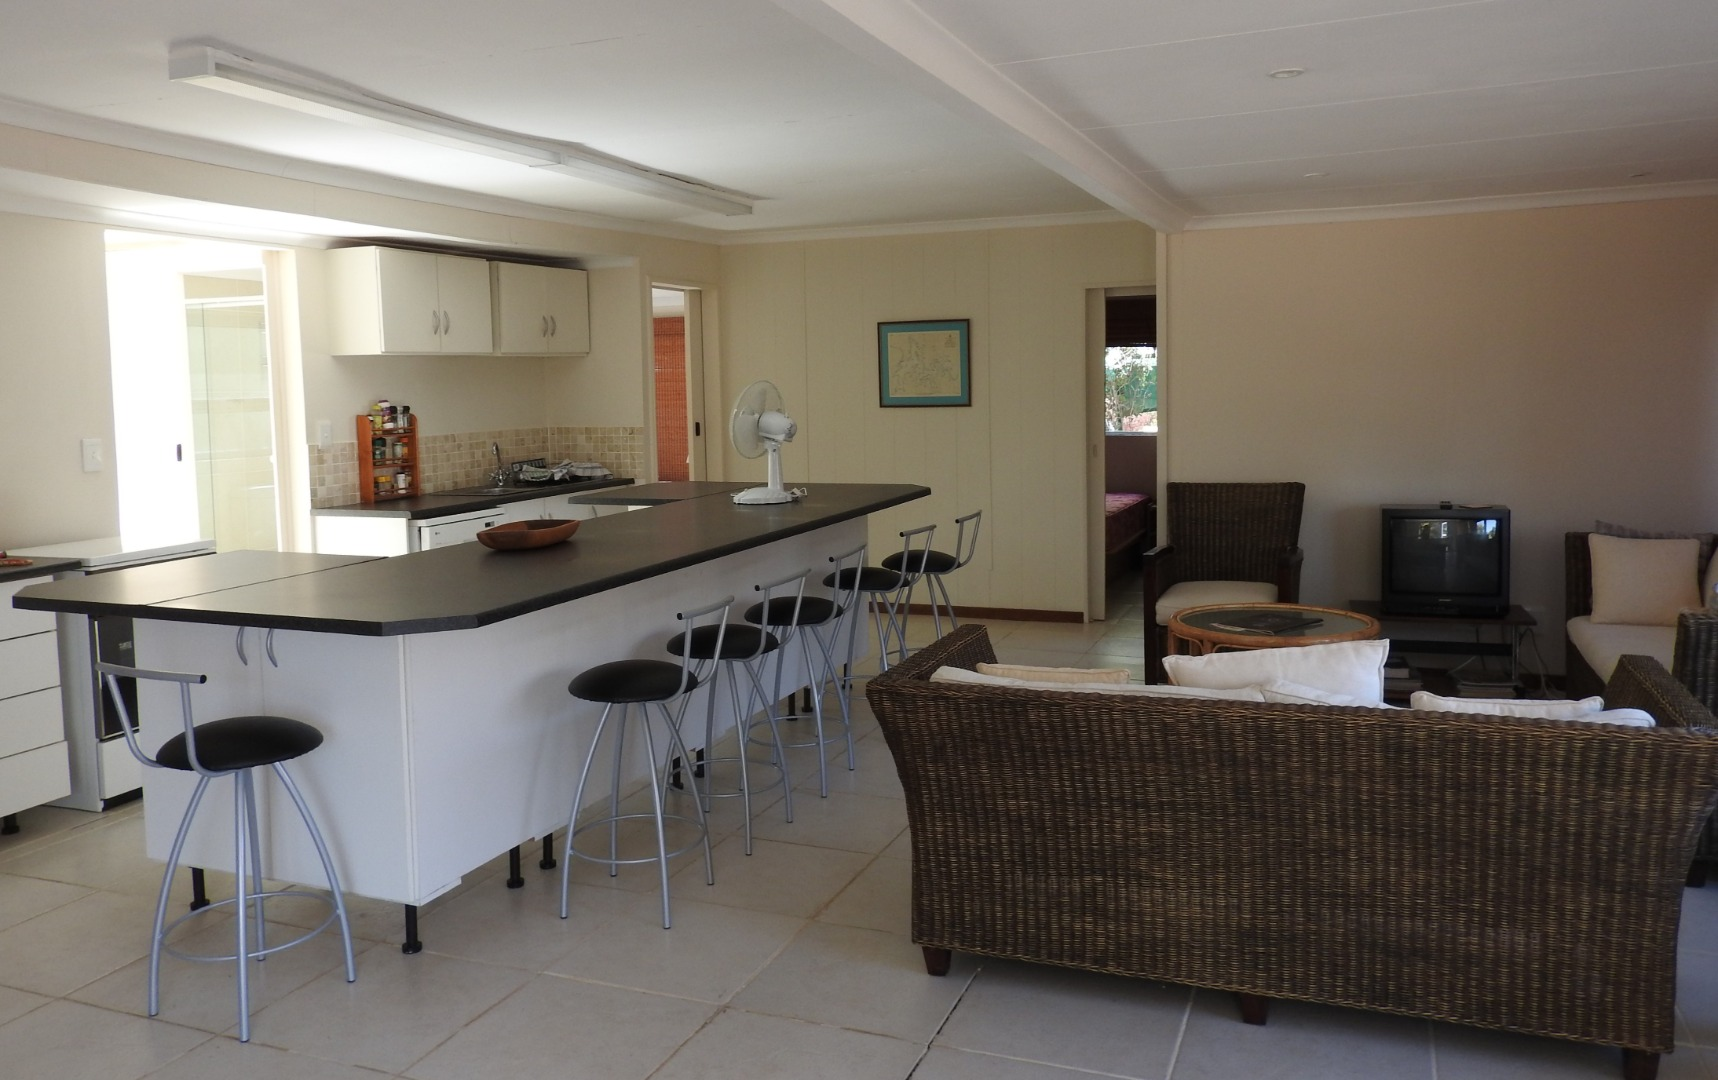 4 Bedroom House For Sale in Vaal Marina